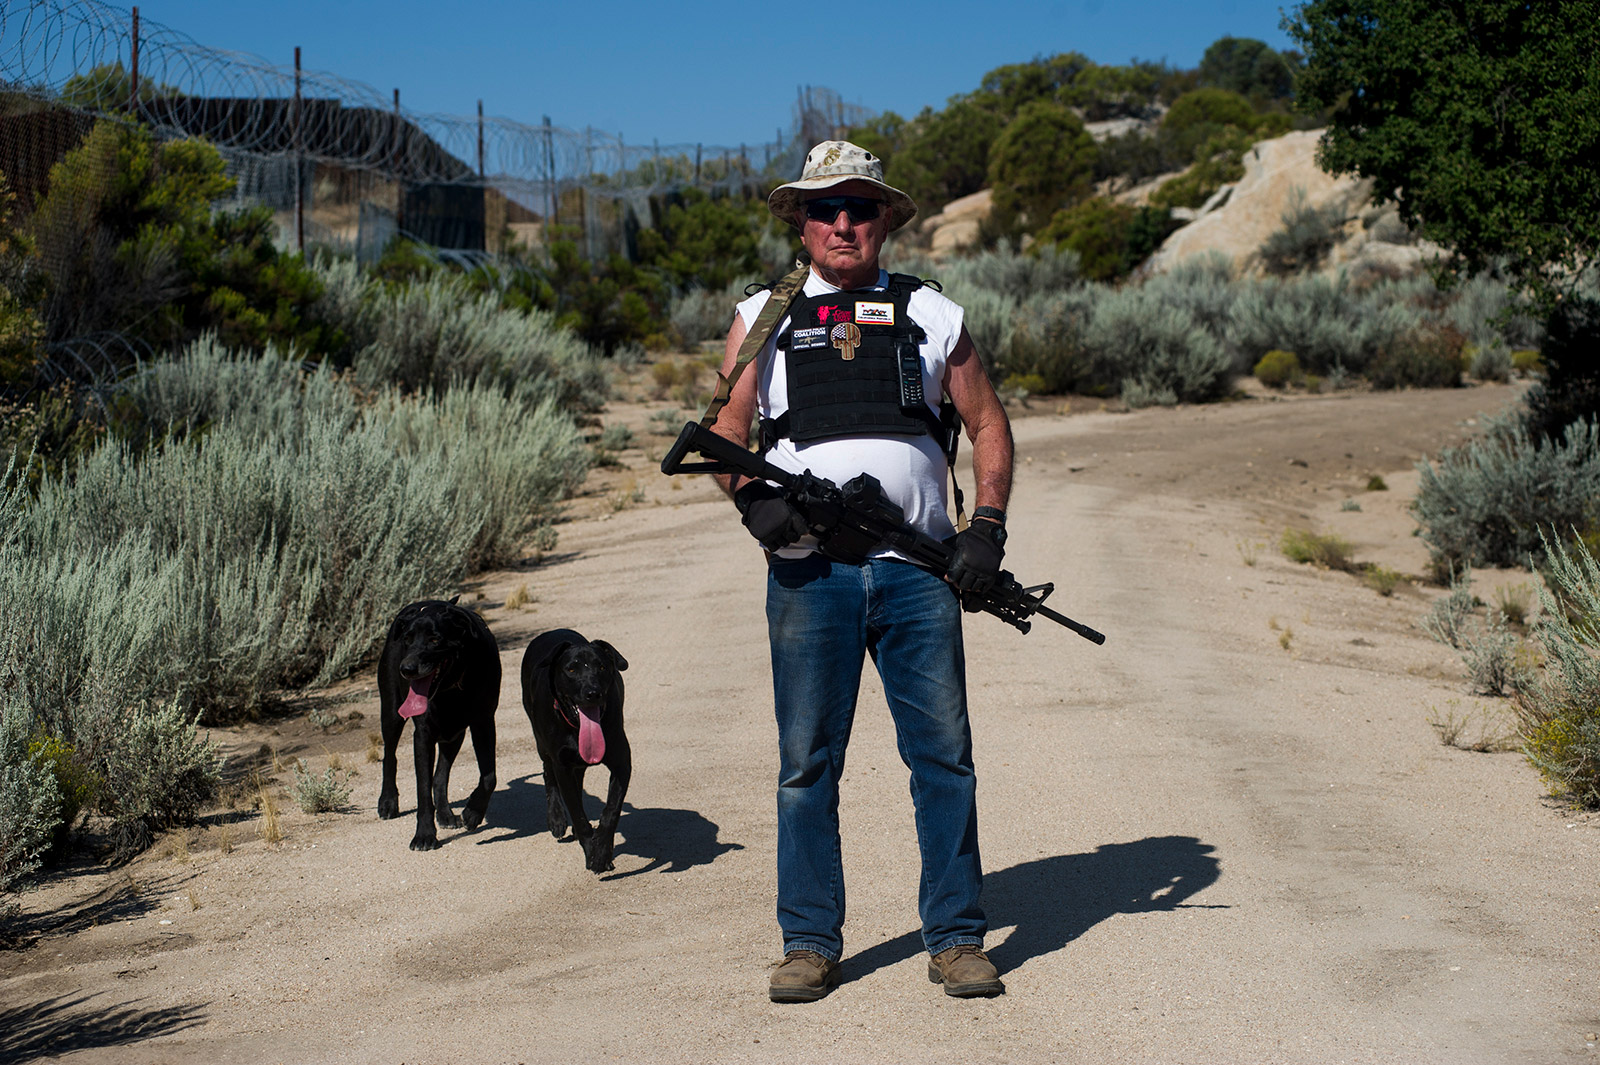 Bob Maupin, 78, poses on Aug. 30, 2017, for a portrait with his dogs Shadow and Inky while patrolling his ranch that borders Mexico. Maupin erected his own 10-foot-high fence, including razor wire at the top, which took him five years to build. <em>(Brandon Quester/inewsource)</em>